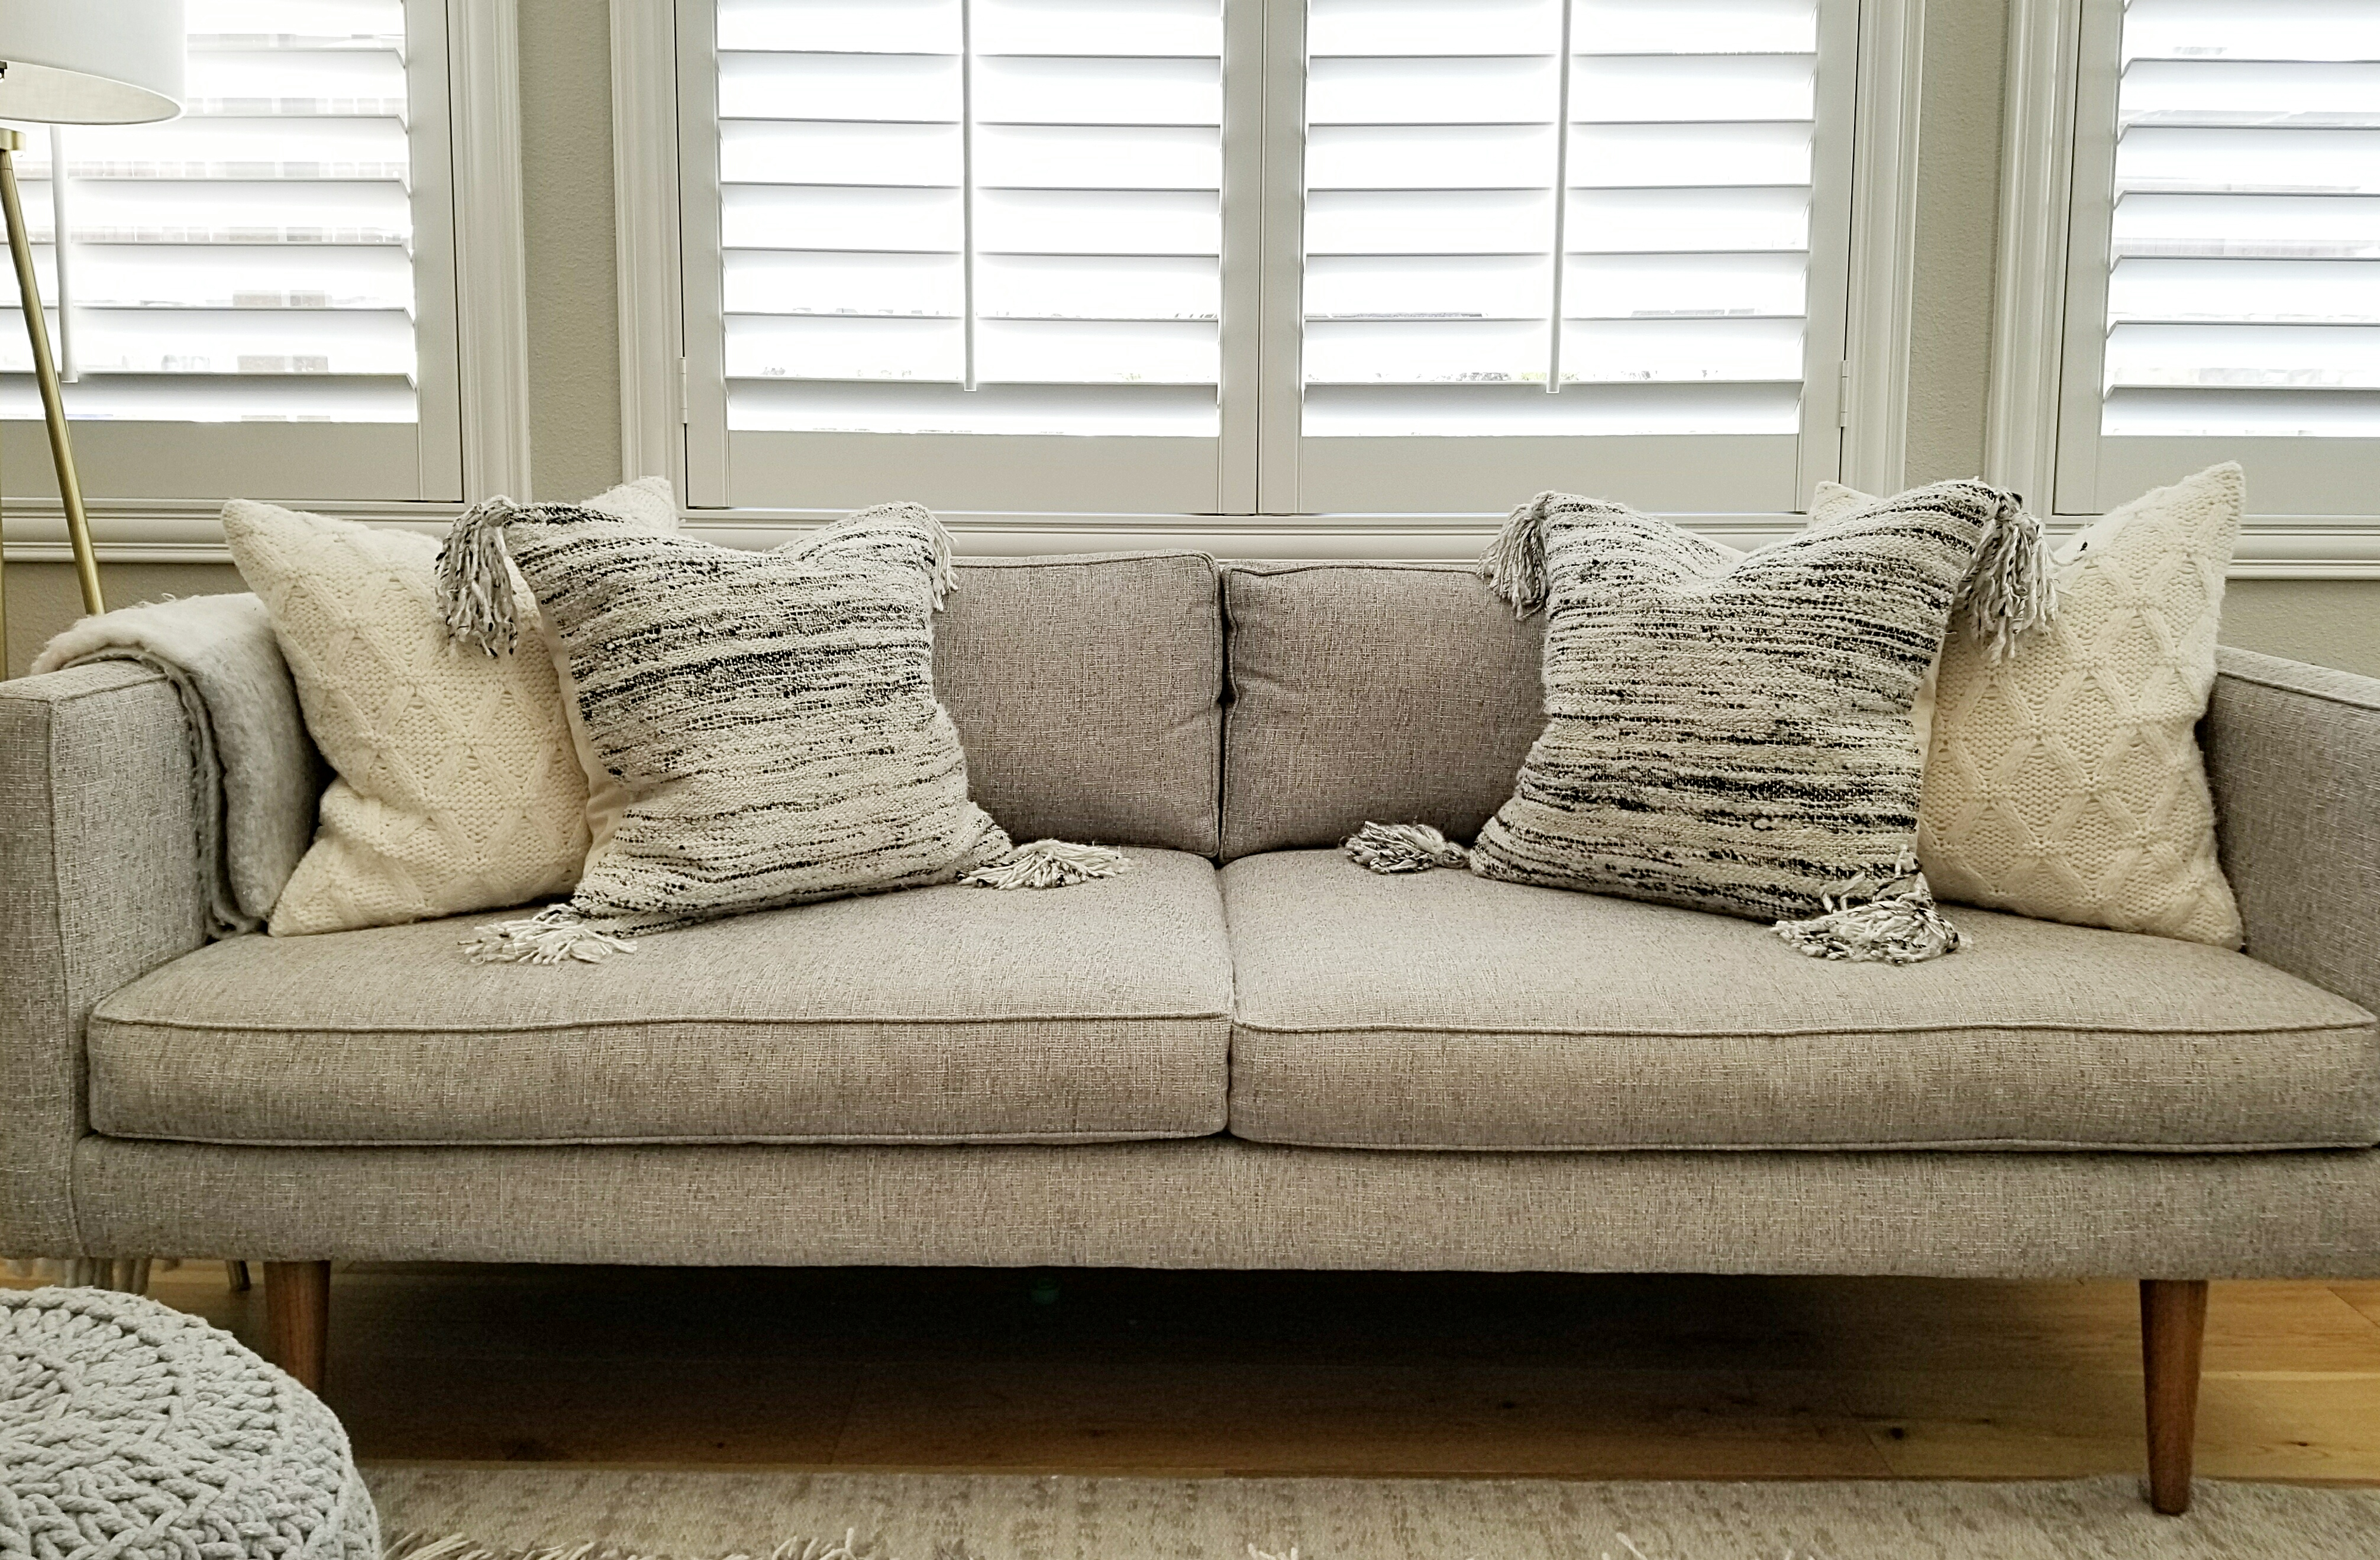 Enjoyable Pillow Styling Sources And Arrangements House Becomes Andrewgaddart Wooden Chair Designs For Living Room Andrewgaddartcom